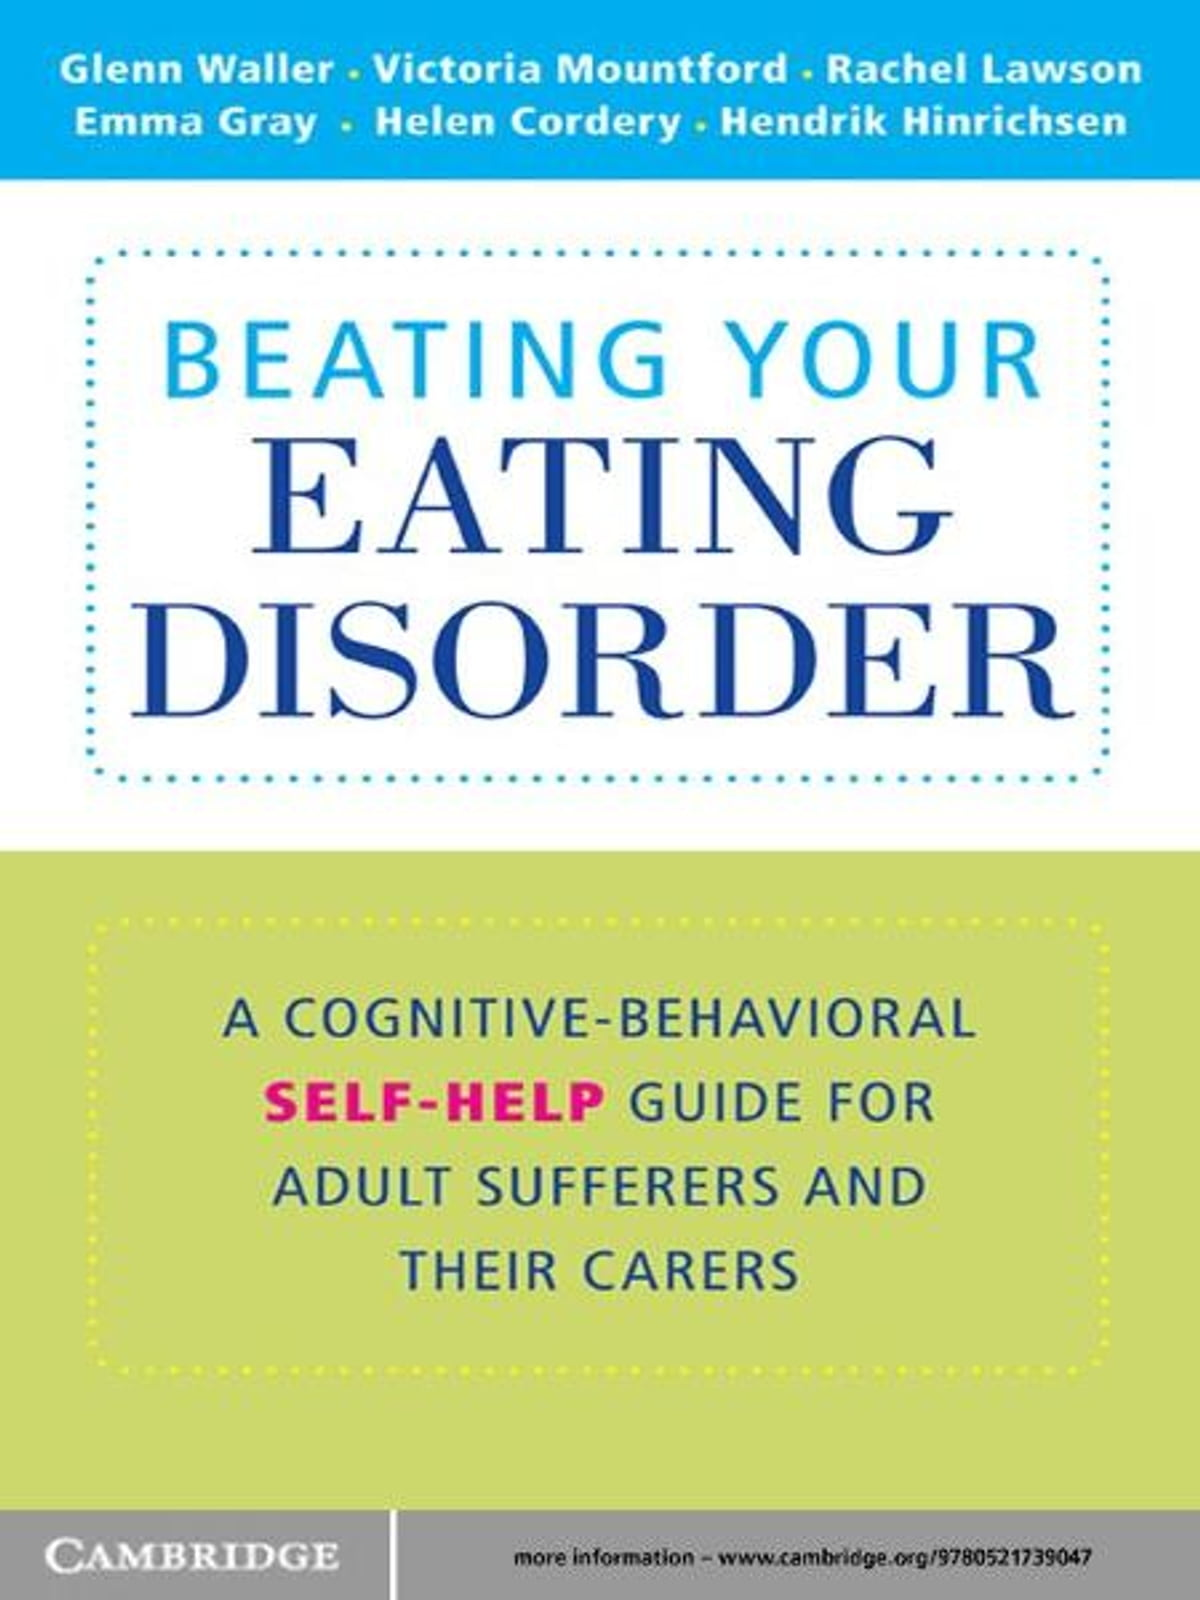 Beating Your Eating Disorder: A Cognitive-Behavioural Self-Help Guide for Adult Sufferers and their Carers by Glenn Waller